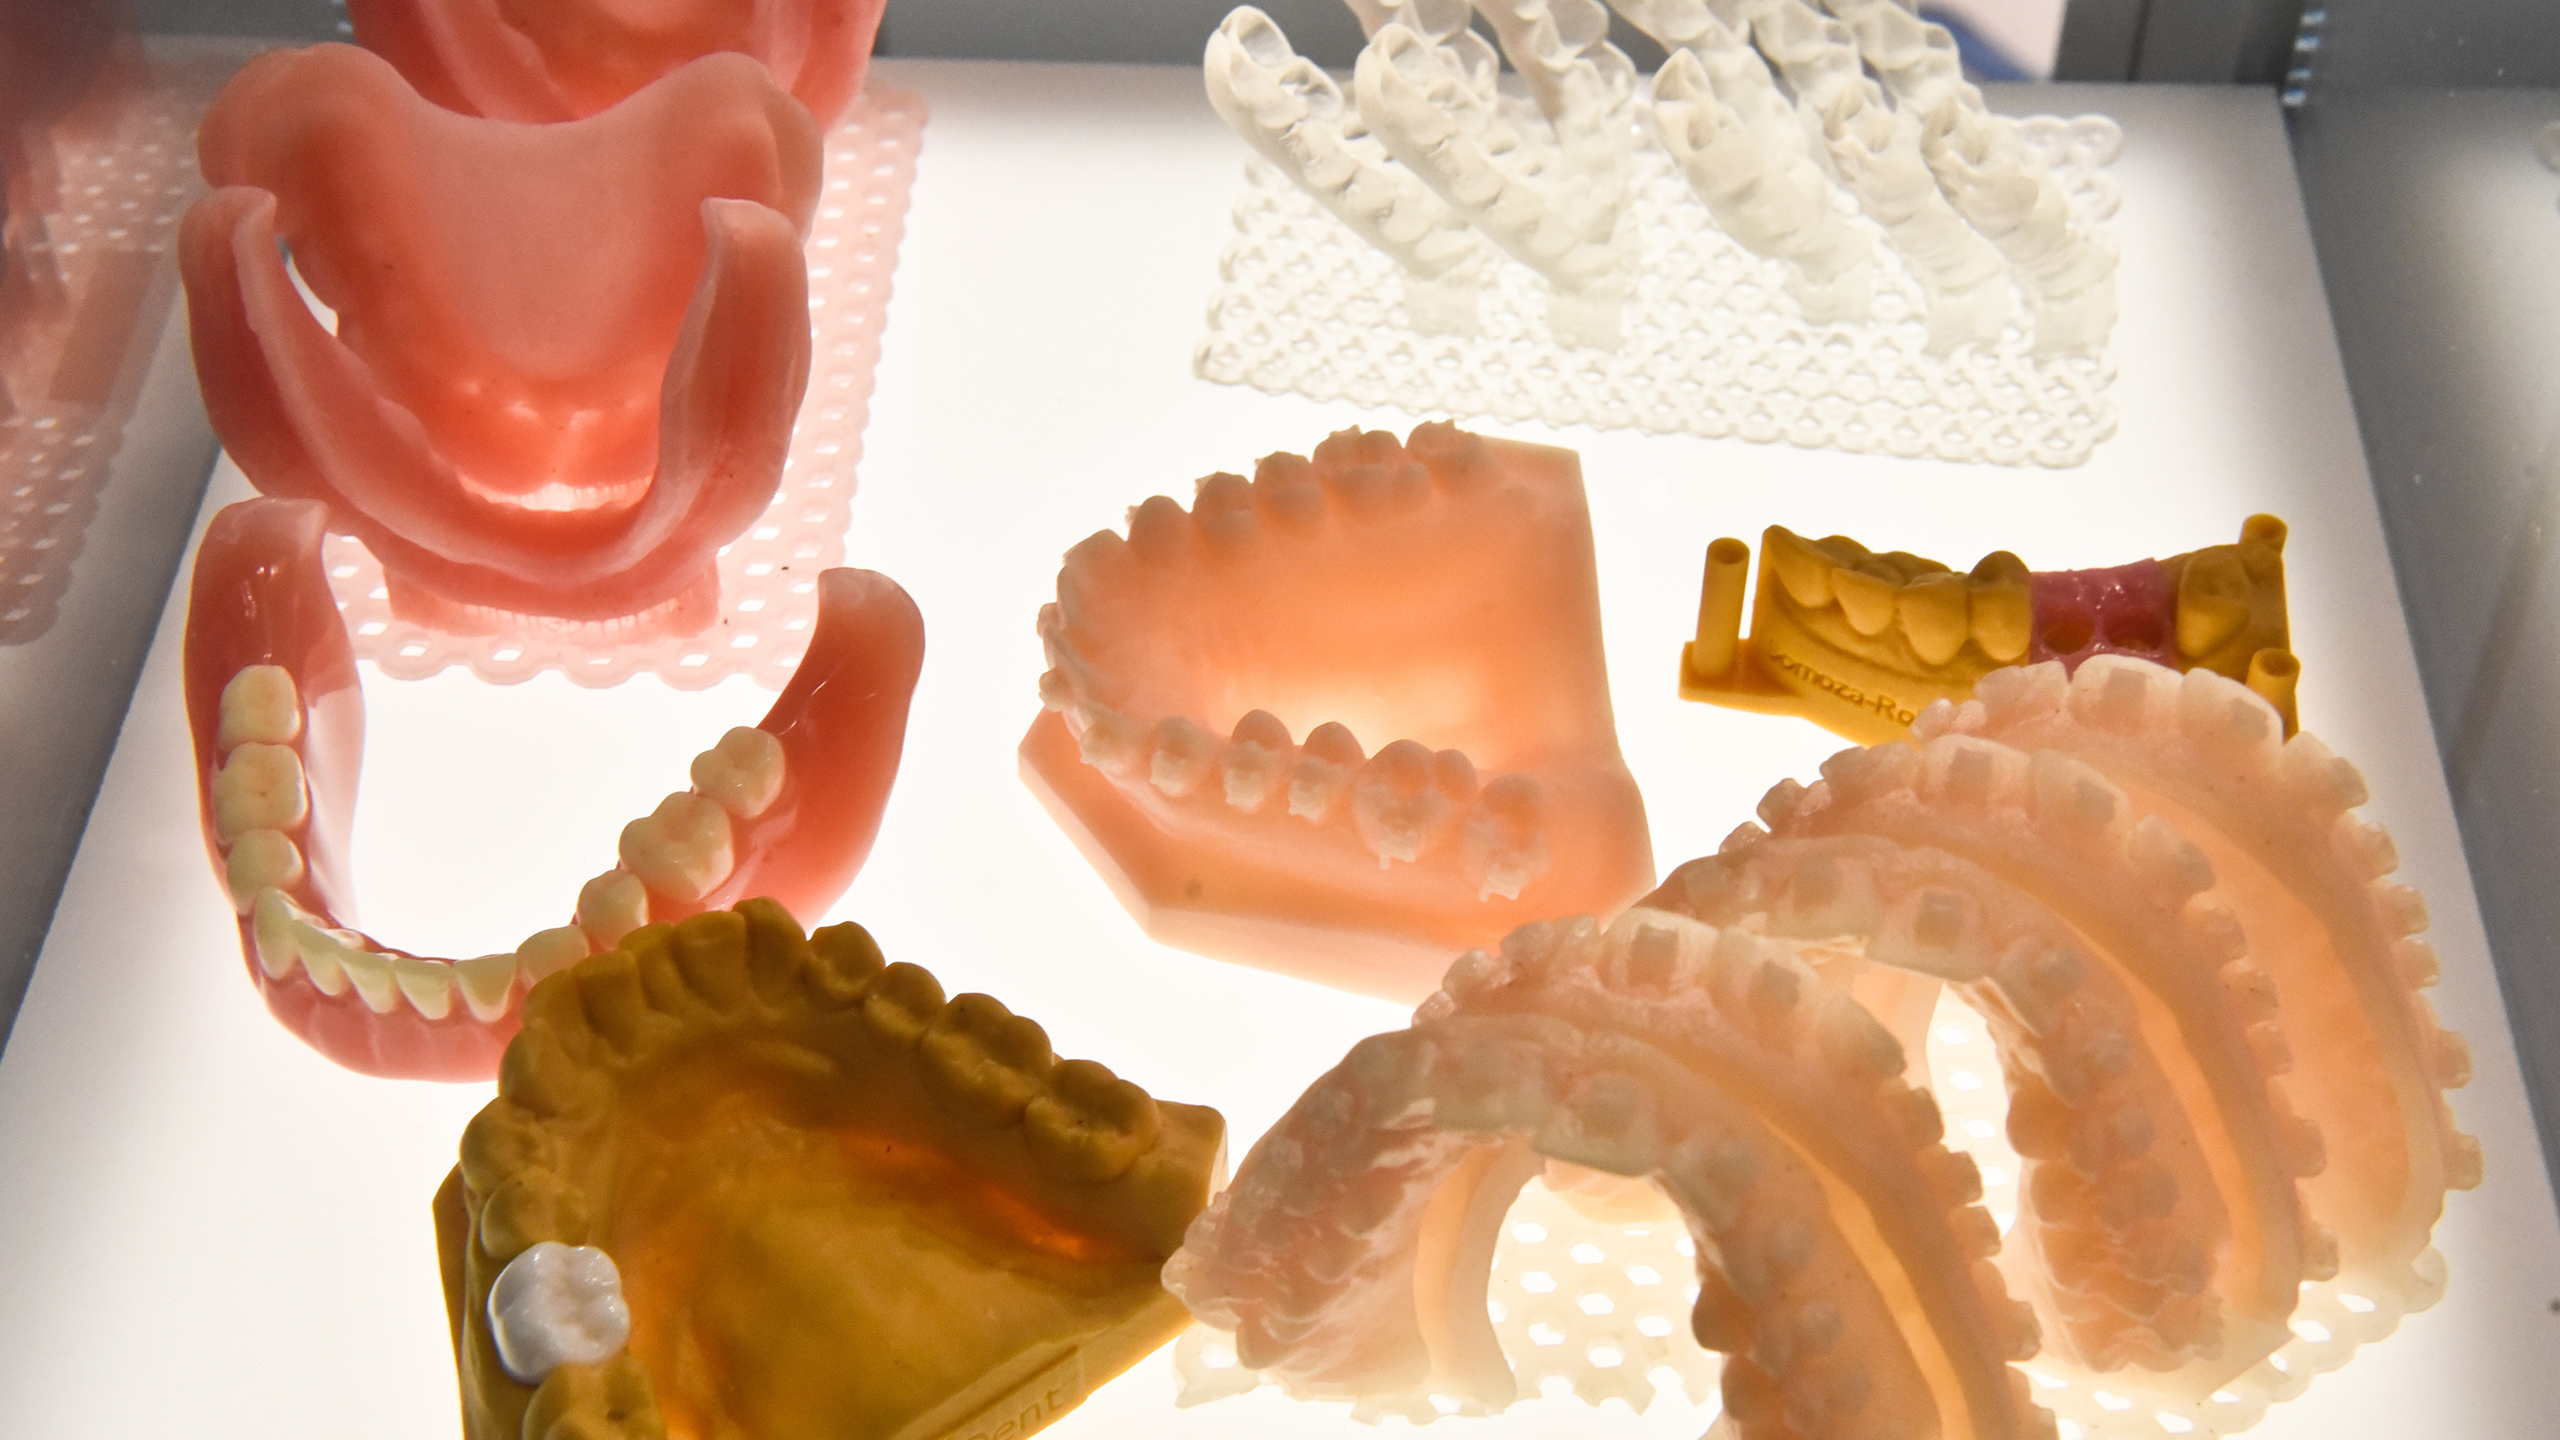 Additive Manufacturing Creating Significant Growth Potential in the Dental Industry